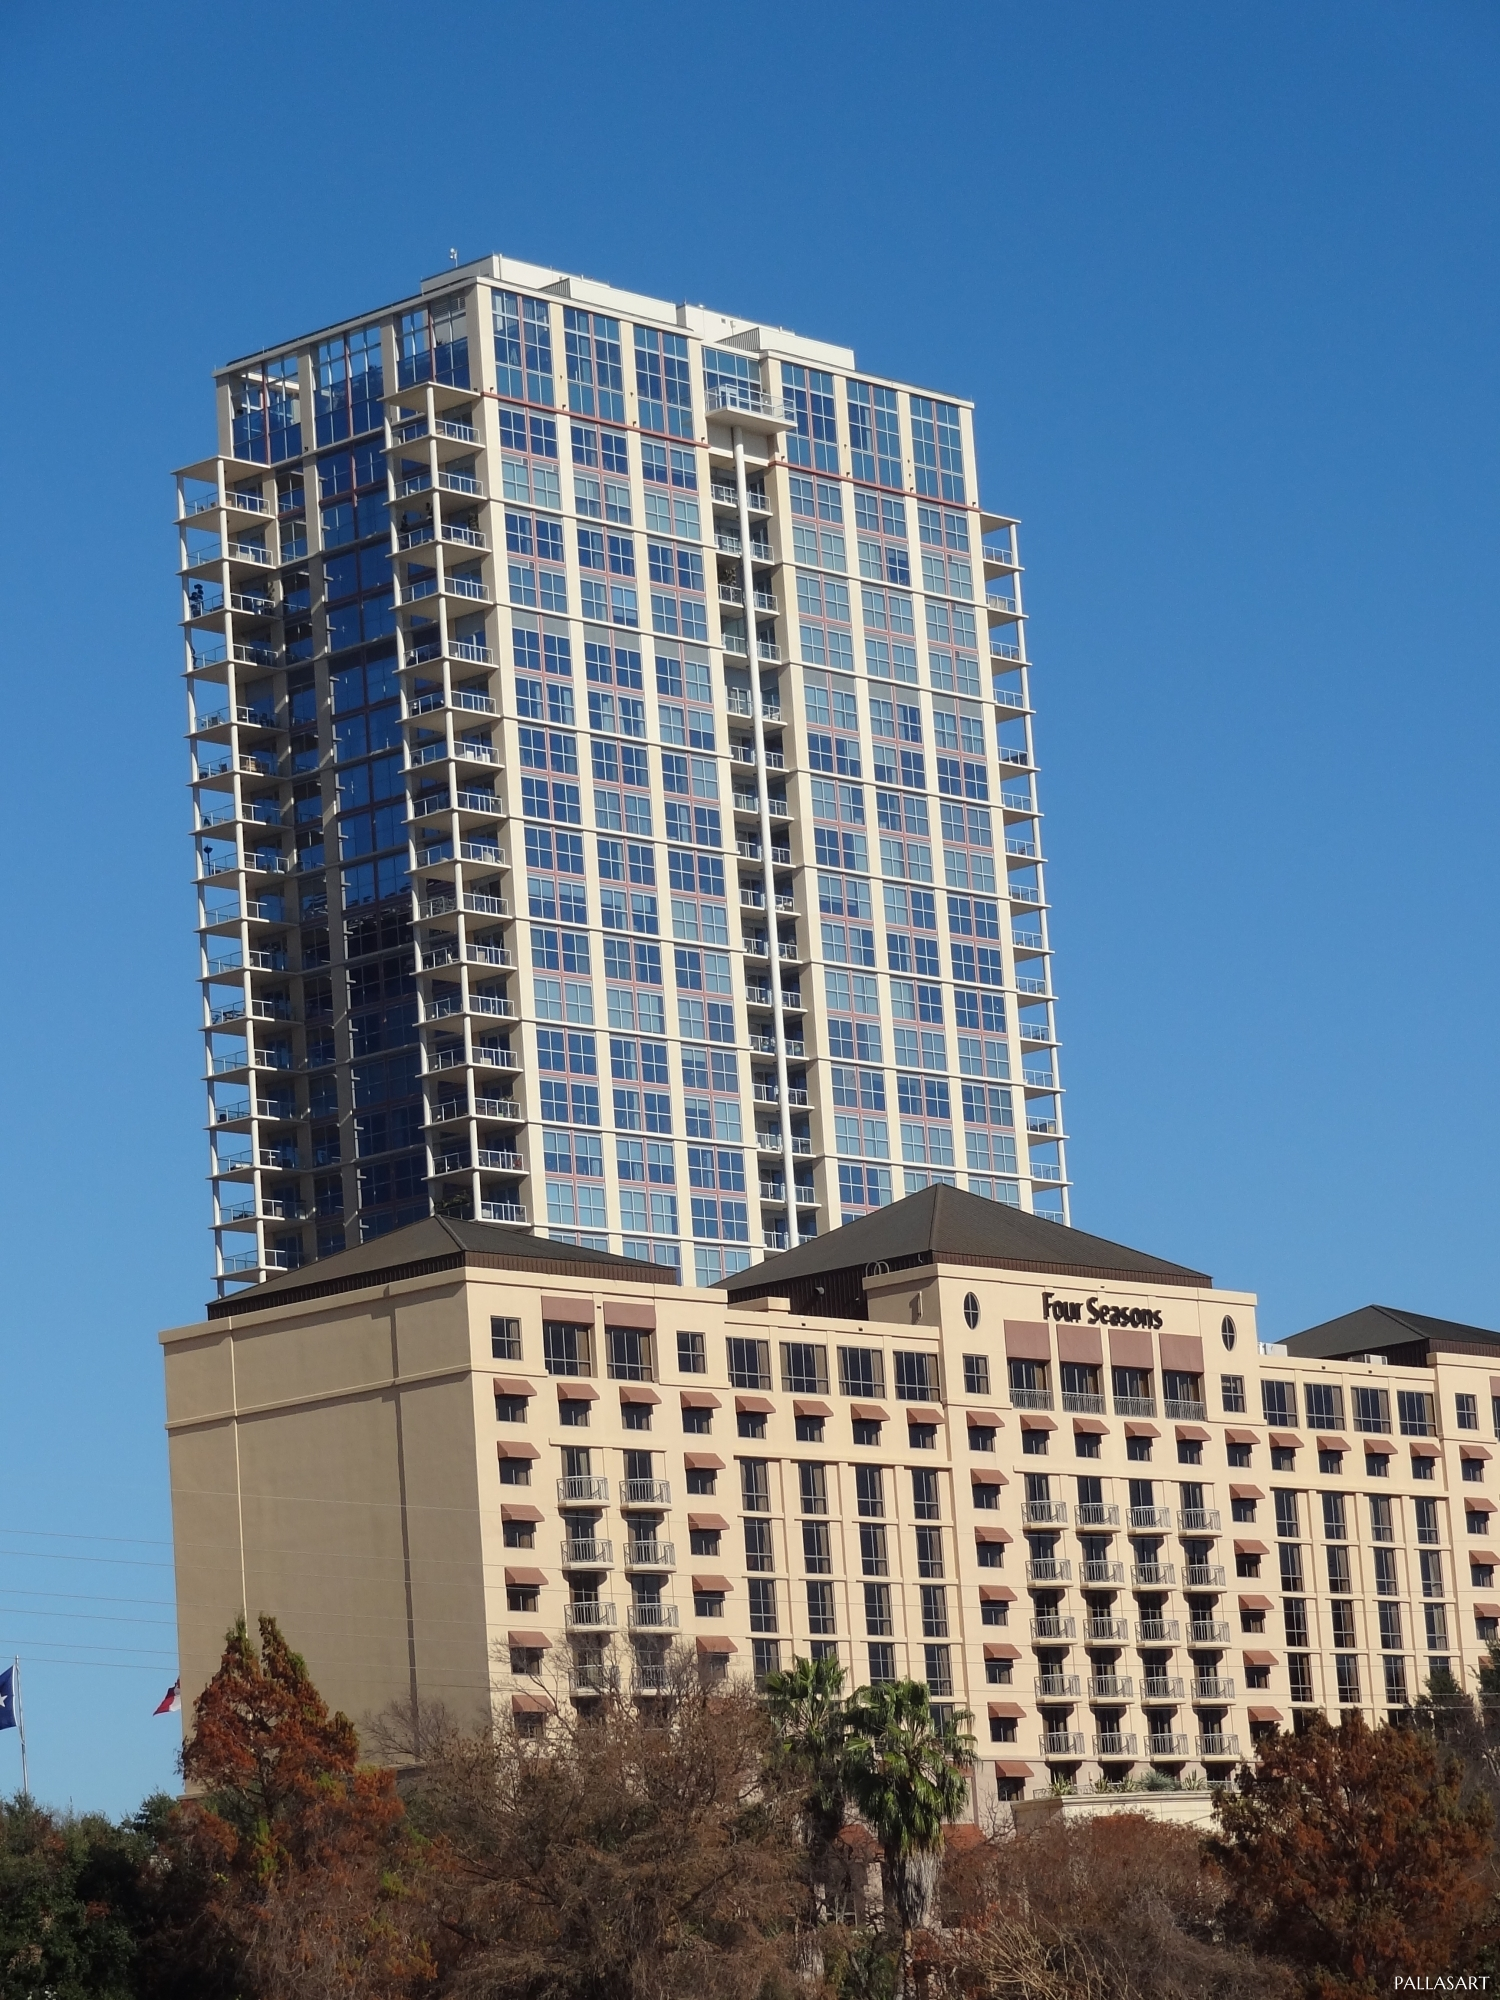 The Four Seasons Hotel and Residences in Austin Texas